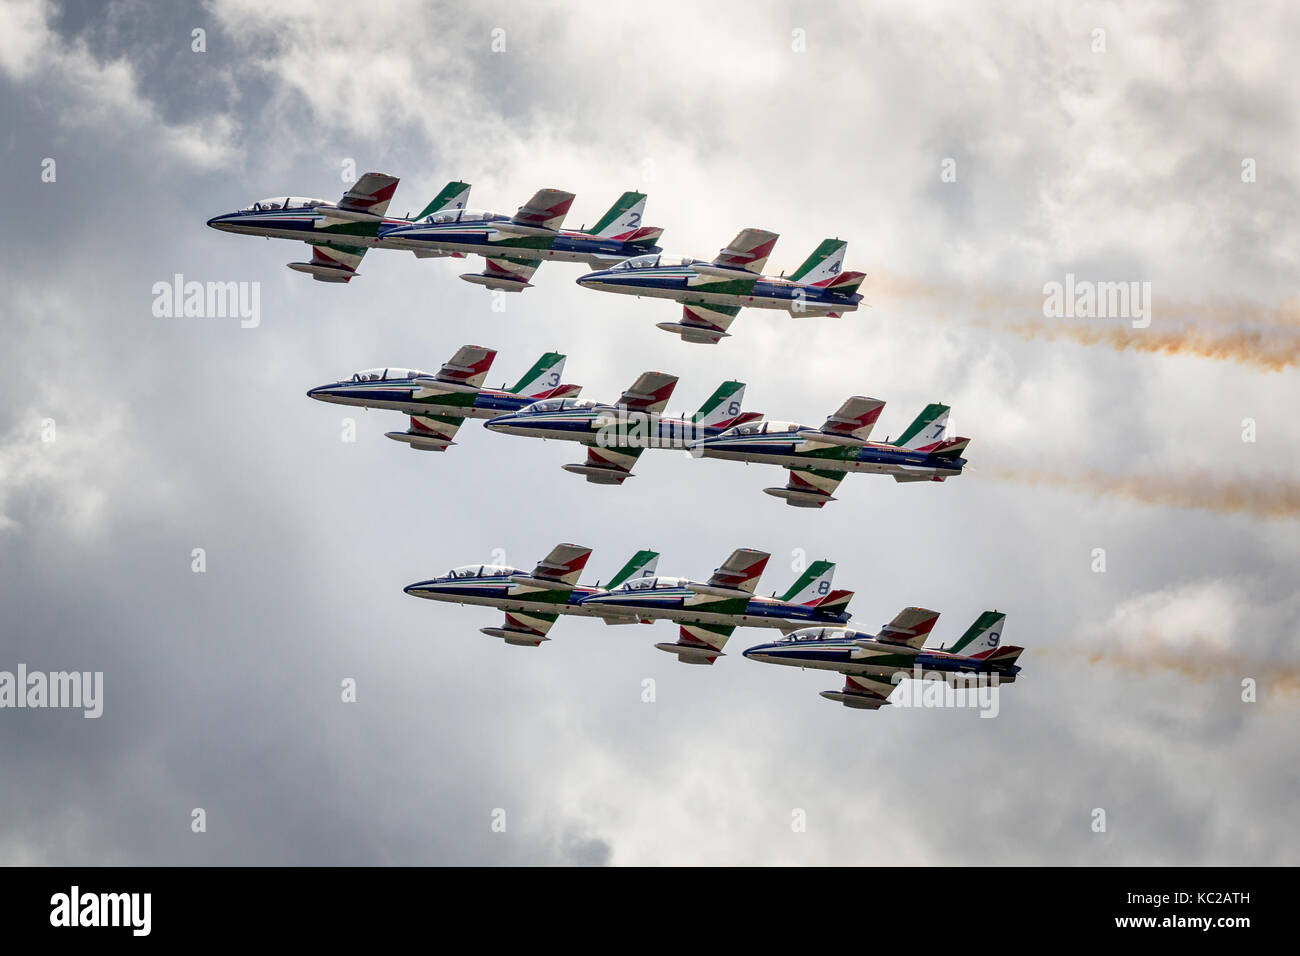 Frecce Tricolori, Aerobatic team of Italian airforce, Sion Airshow, Sion, Valais, Switzerland, Stock Photo